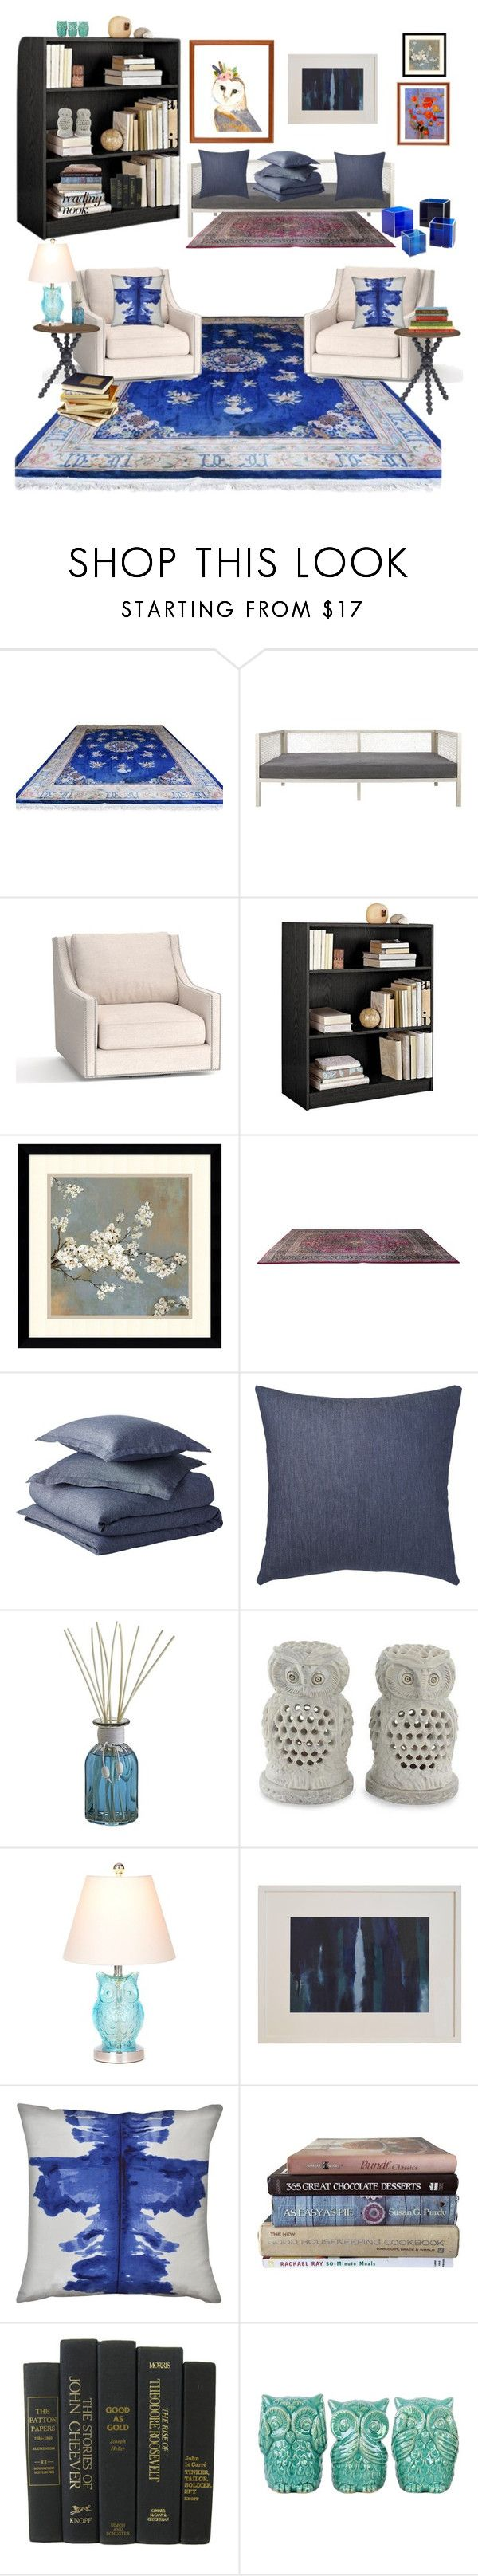 """""""Curl Up:Reading Nook"""" by sereneowl ❤ liked on Polyvore featuring interior, interiors, interior design, home, home decor, interior decorating, Pottery Barn, Amanti Art, Sarreid and Pier 1 Imports"""